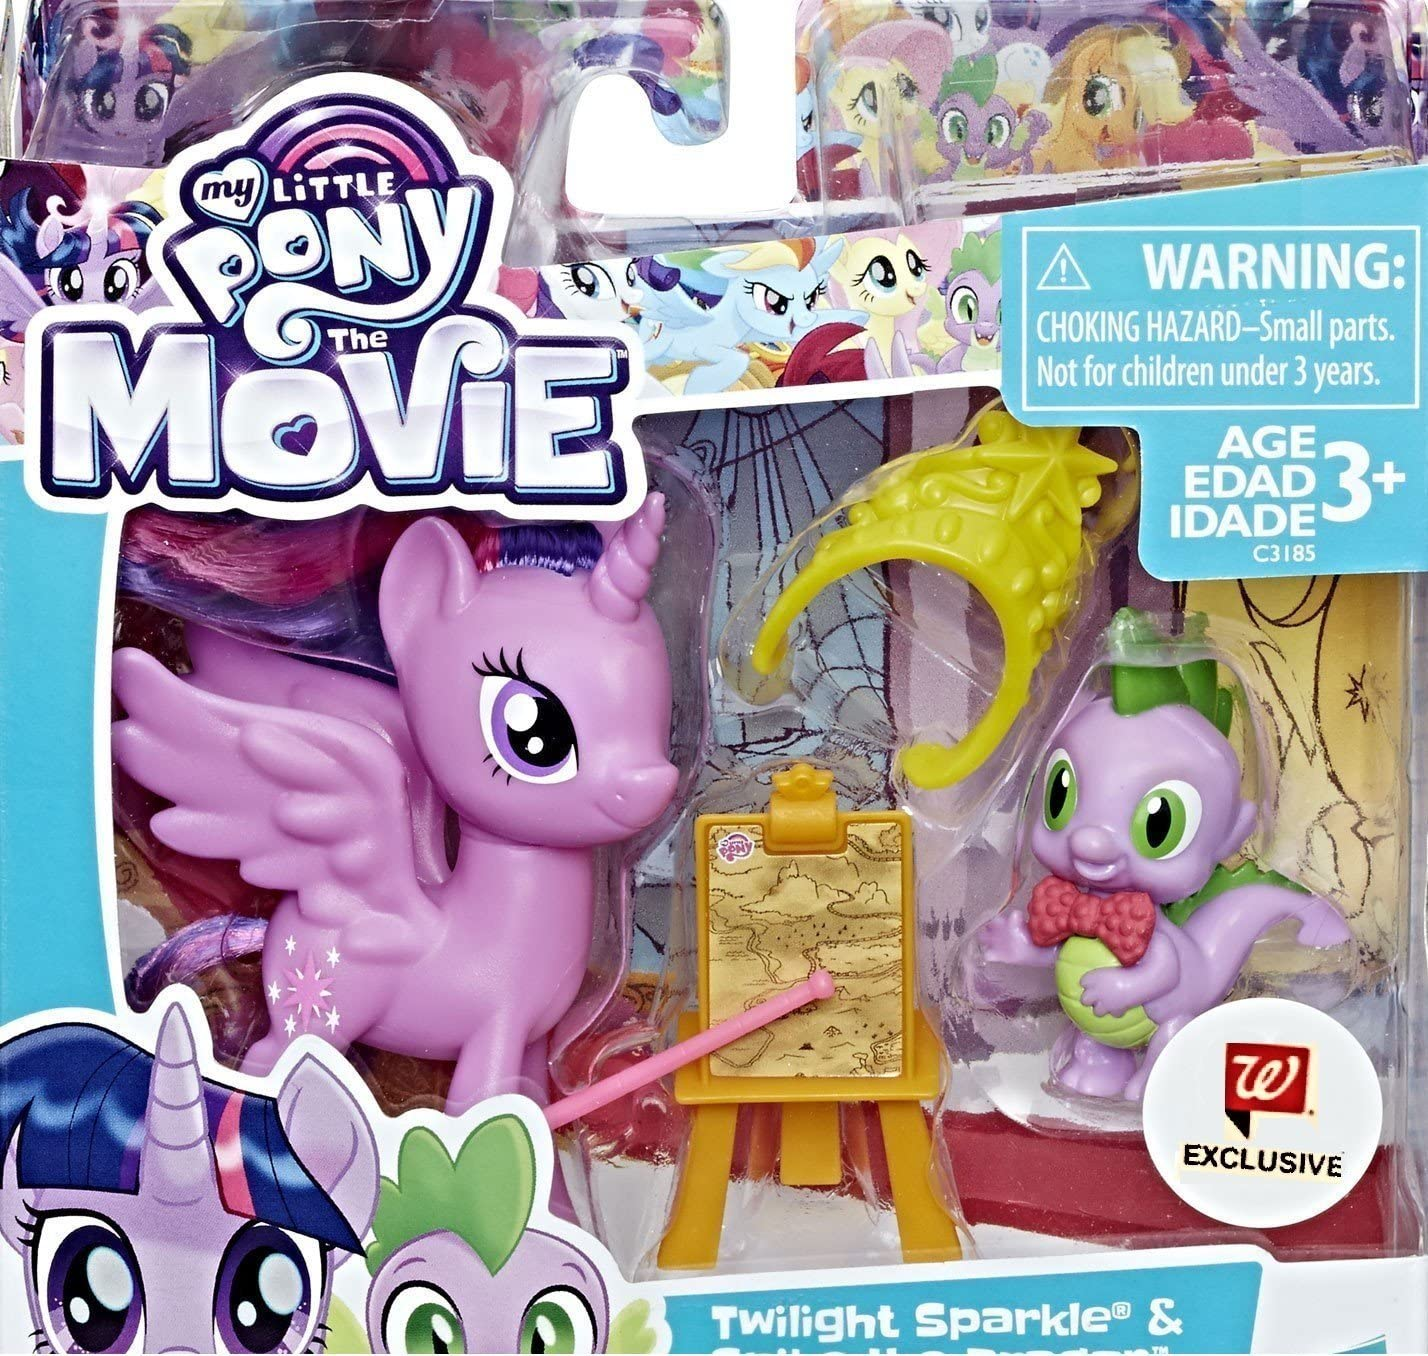 Amazon Com My Little Pony The Movie Twilight Sparkle With Spike The Dragon Exclusive Toys Games